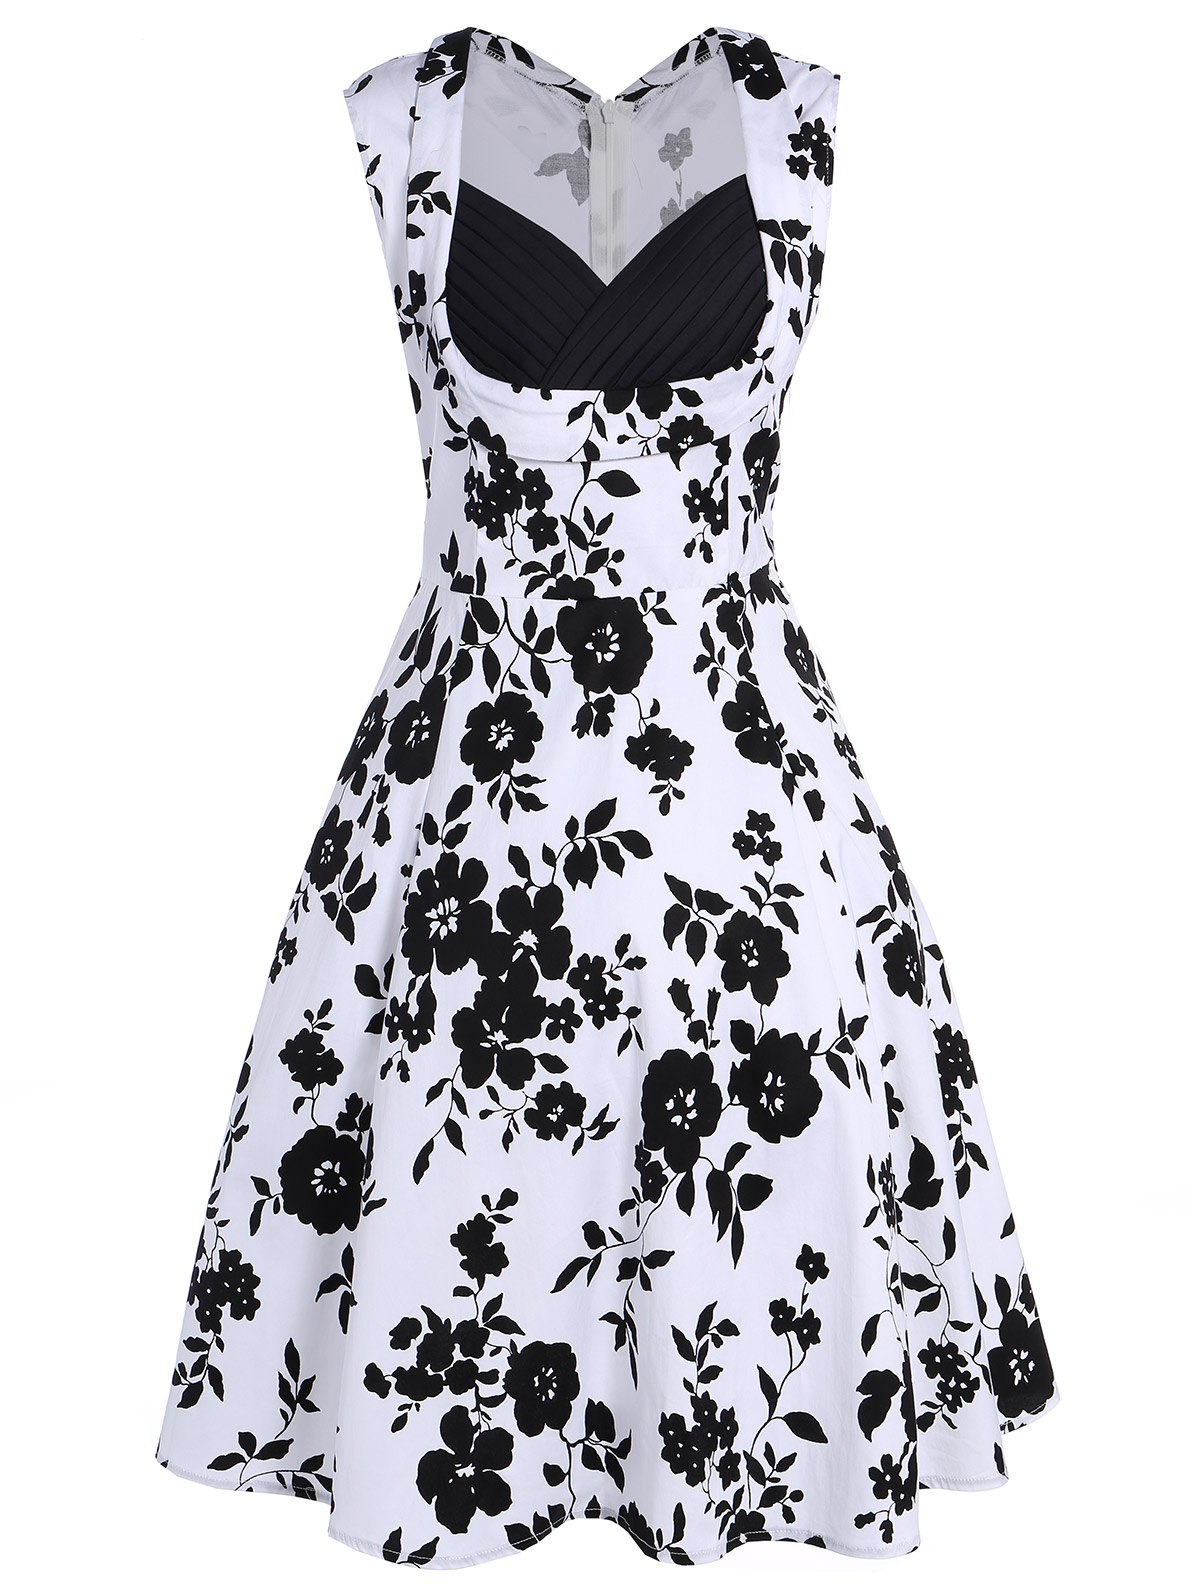 Sleeveless Shirred Floral Print Swing Dress Vintage Prom Dresses - WHITE 2XL